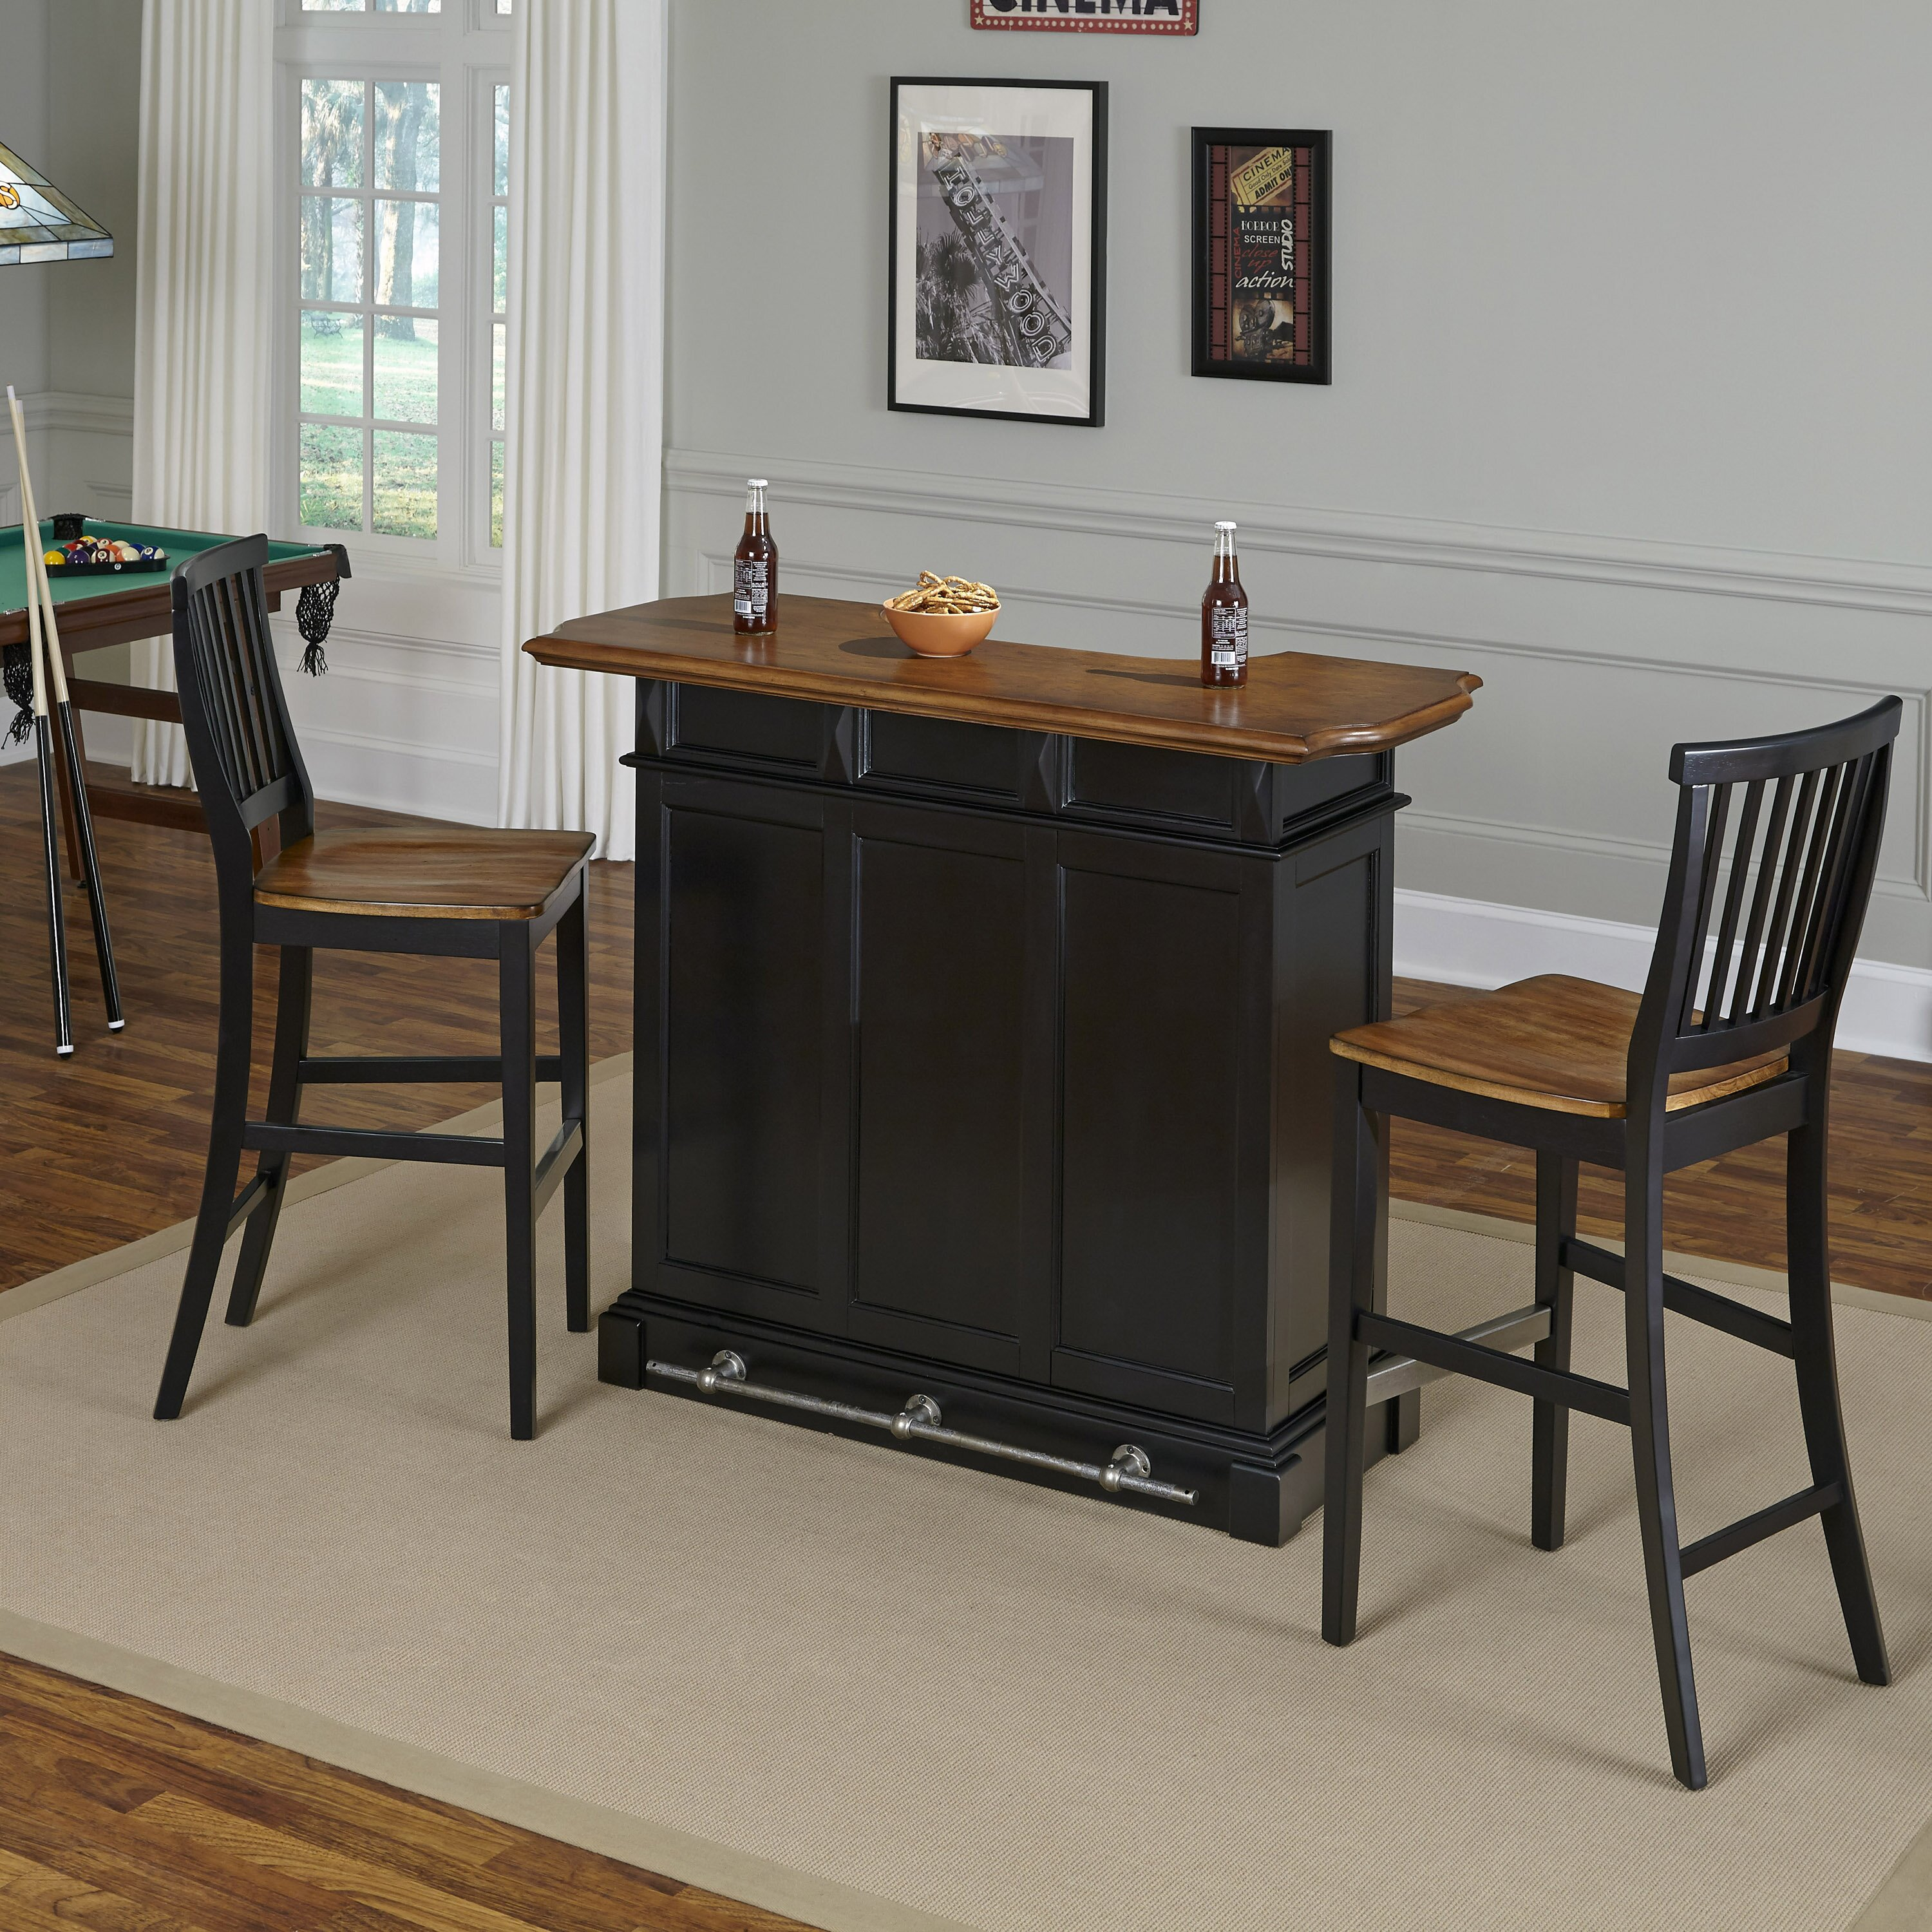 Home Styles Americana Home Bar Set Reviews Wayfair